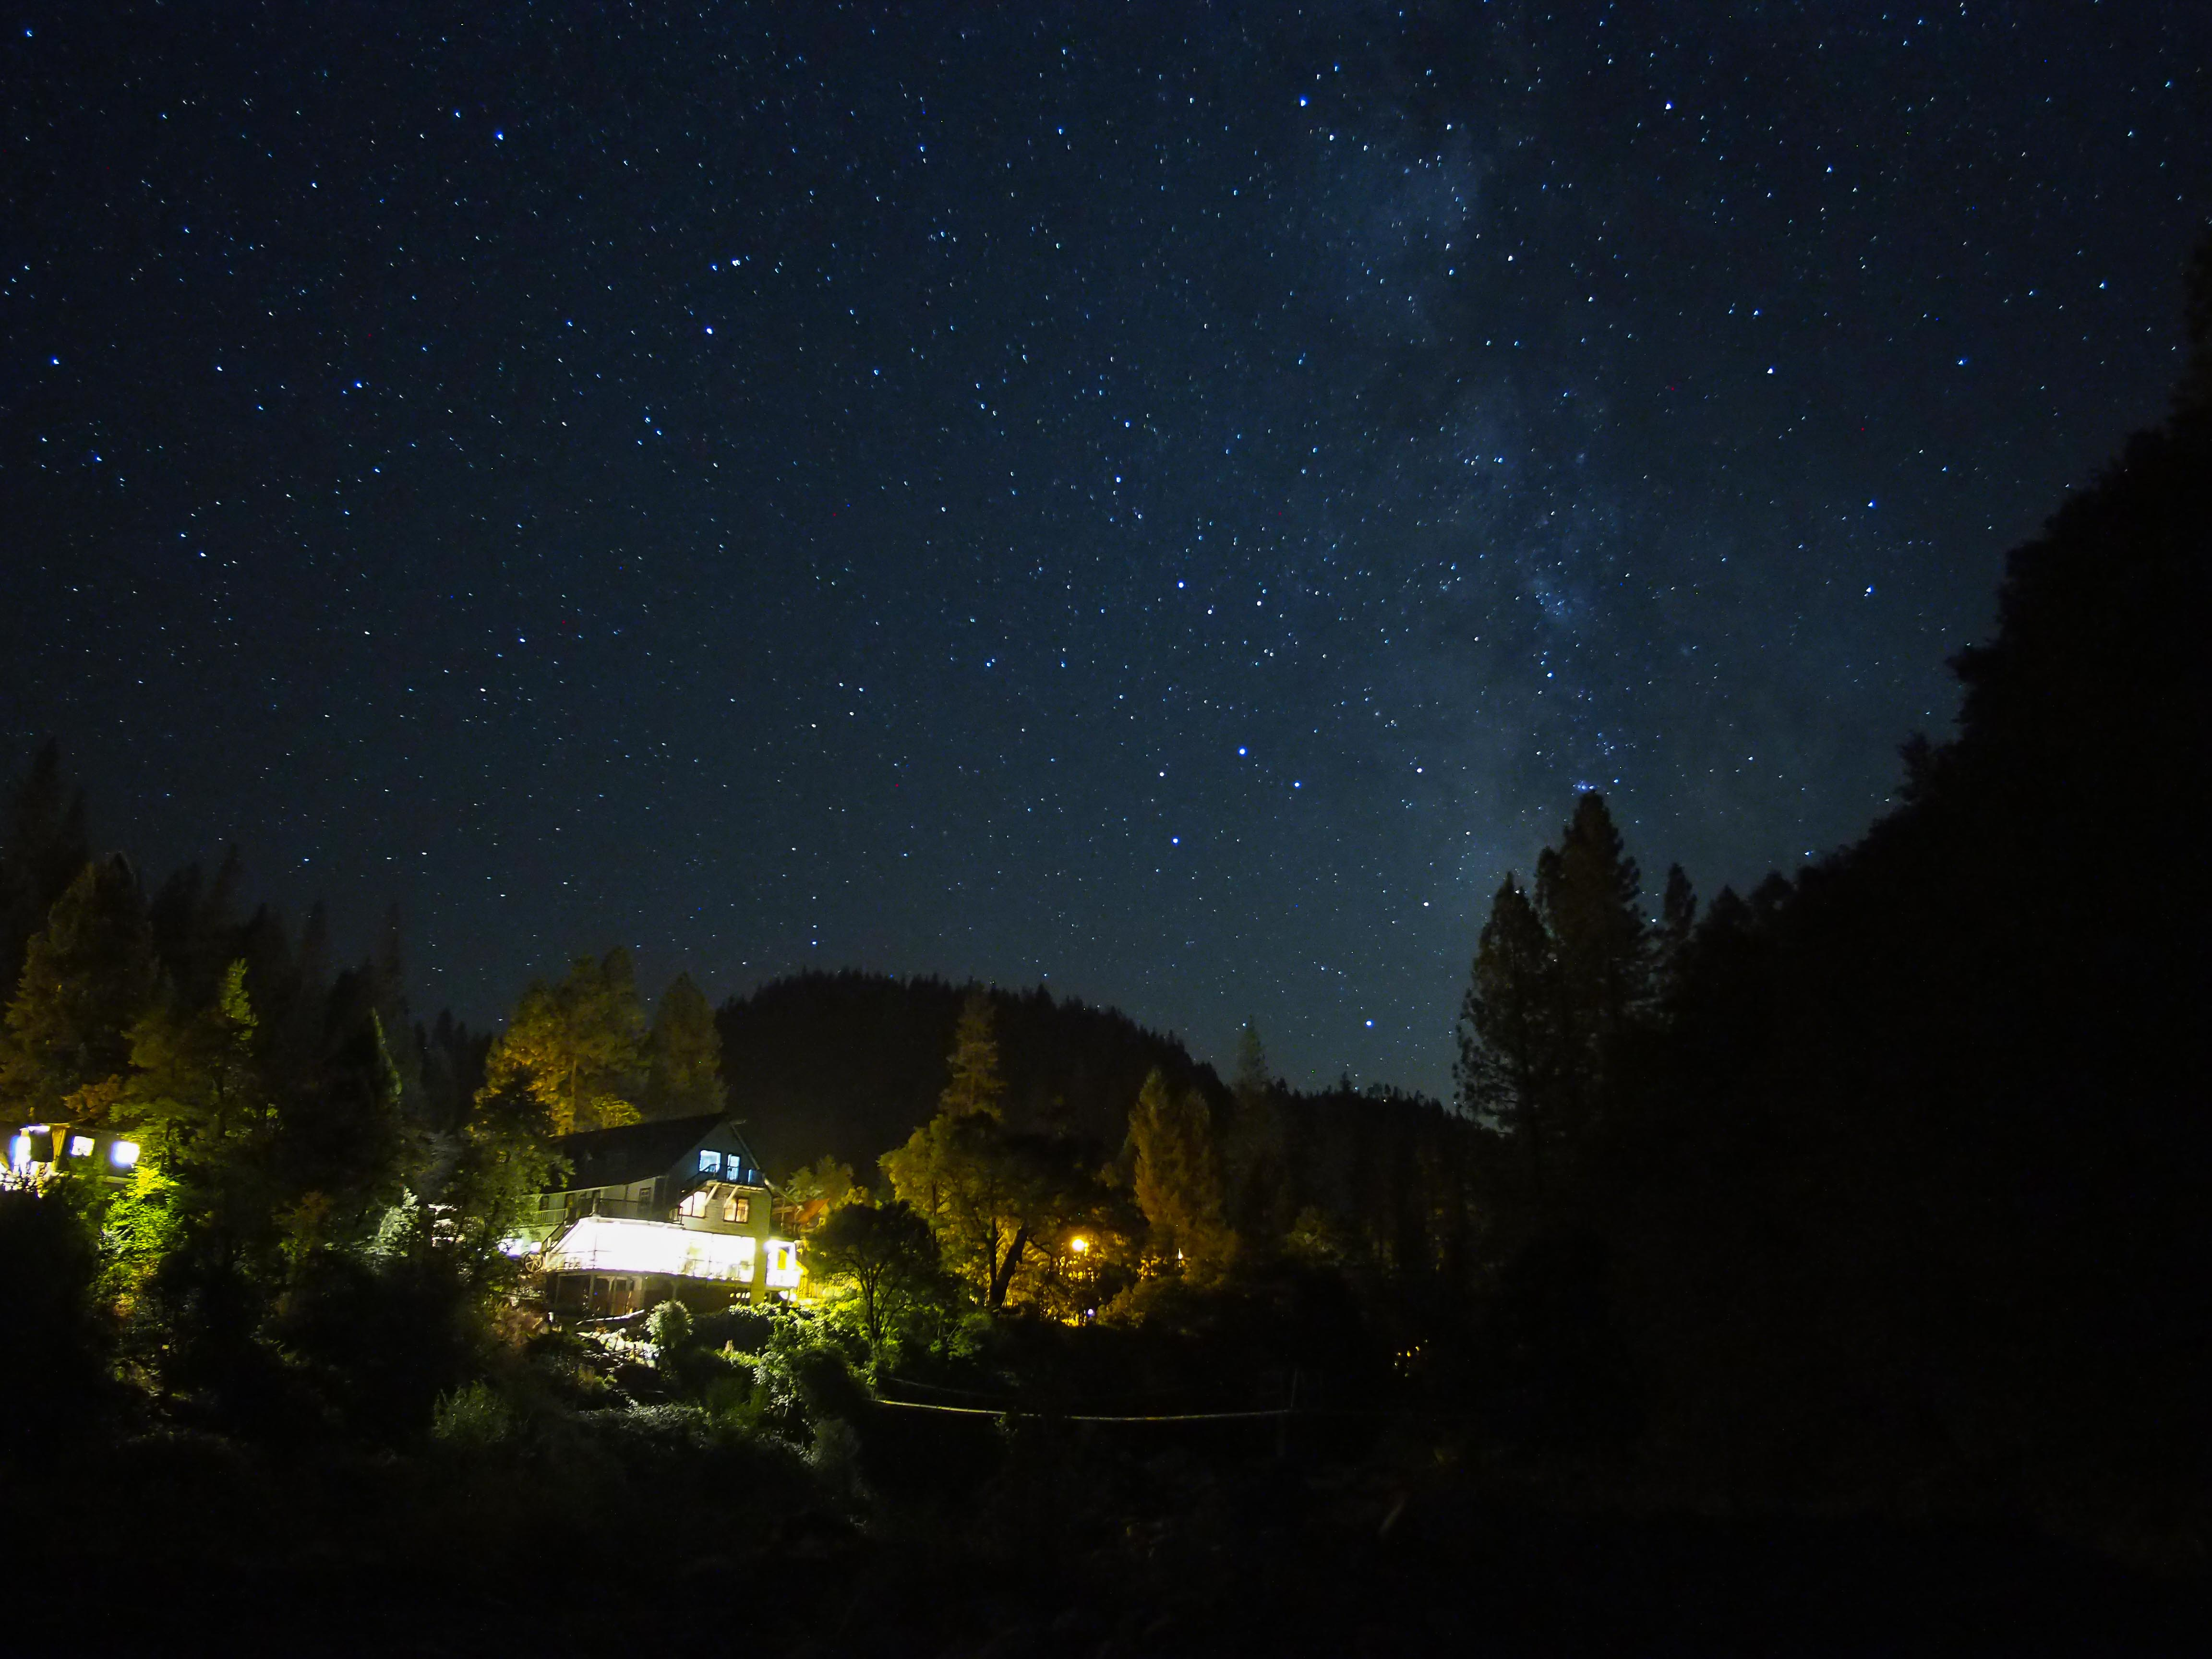 Photo of the night sky  the milky way visible above a brightly lit Washington Hotel cabin in the woods alongside the Yuba river